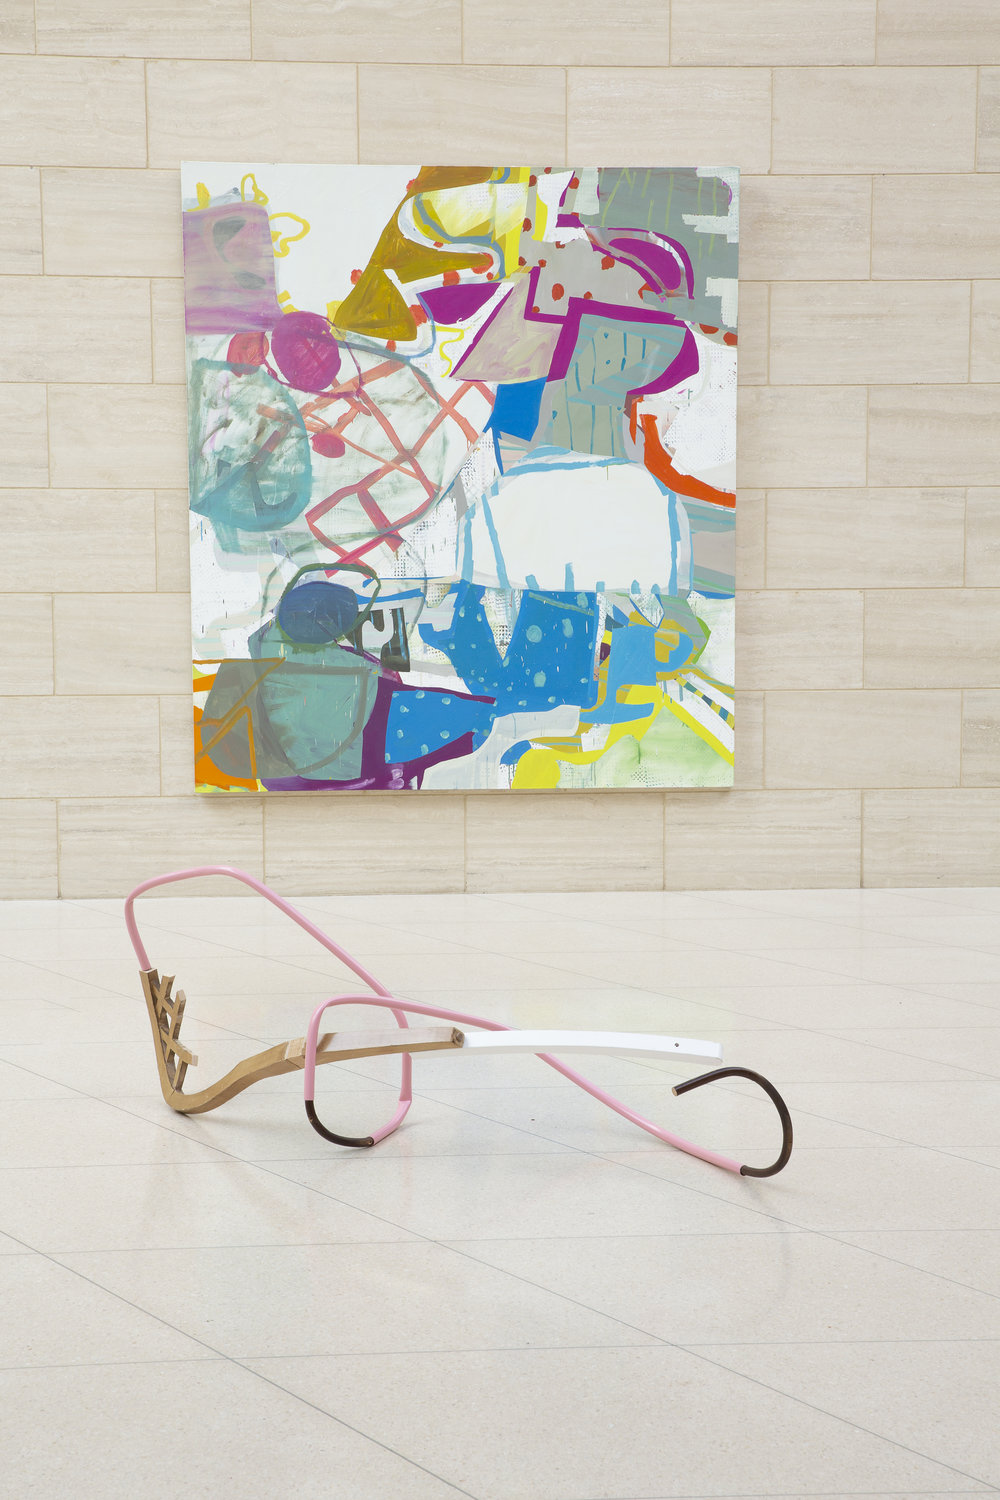 Installation view, Kirk Stoller front